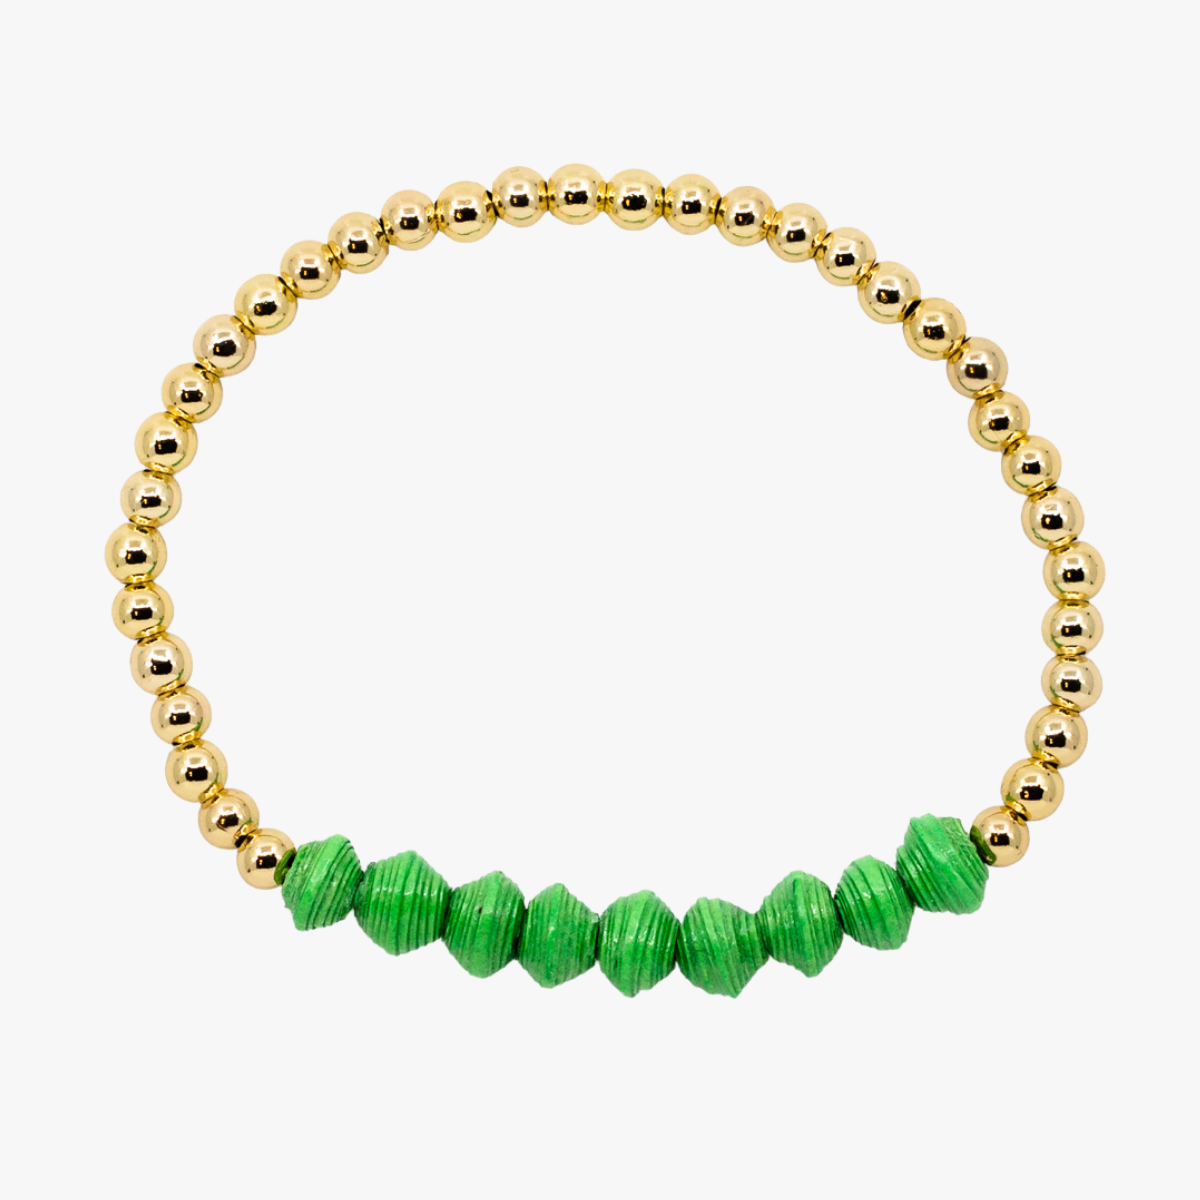 Ethically made bracelet with 18k gold beads and bright green paper beads